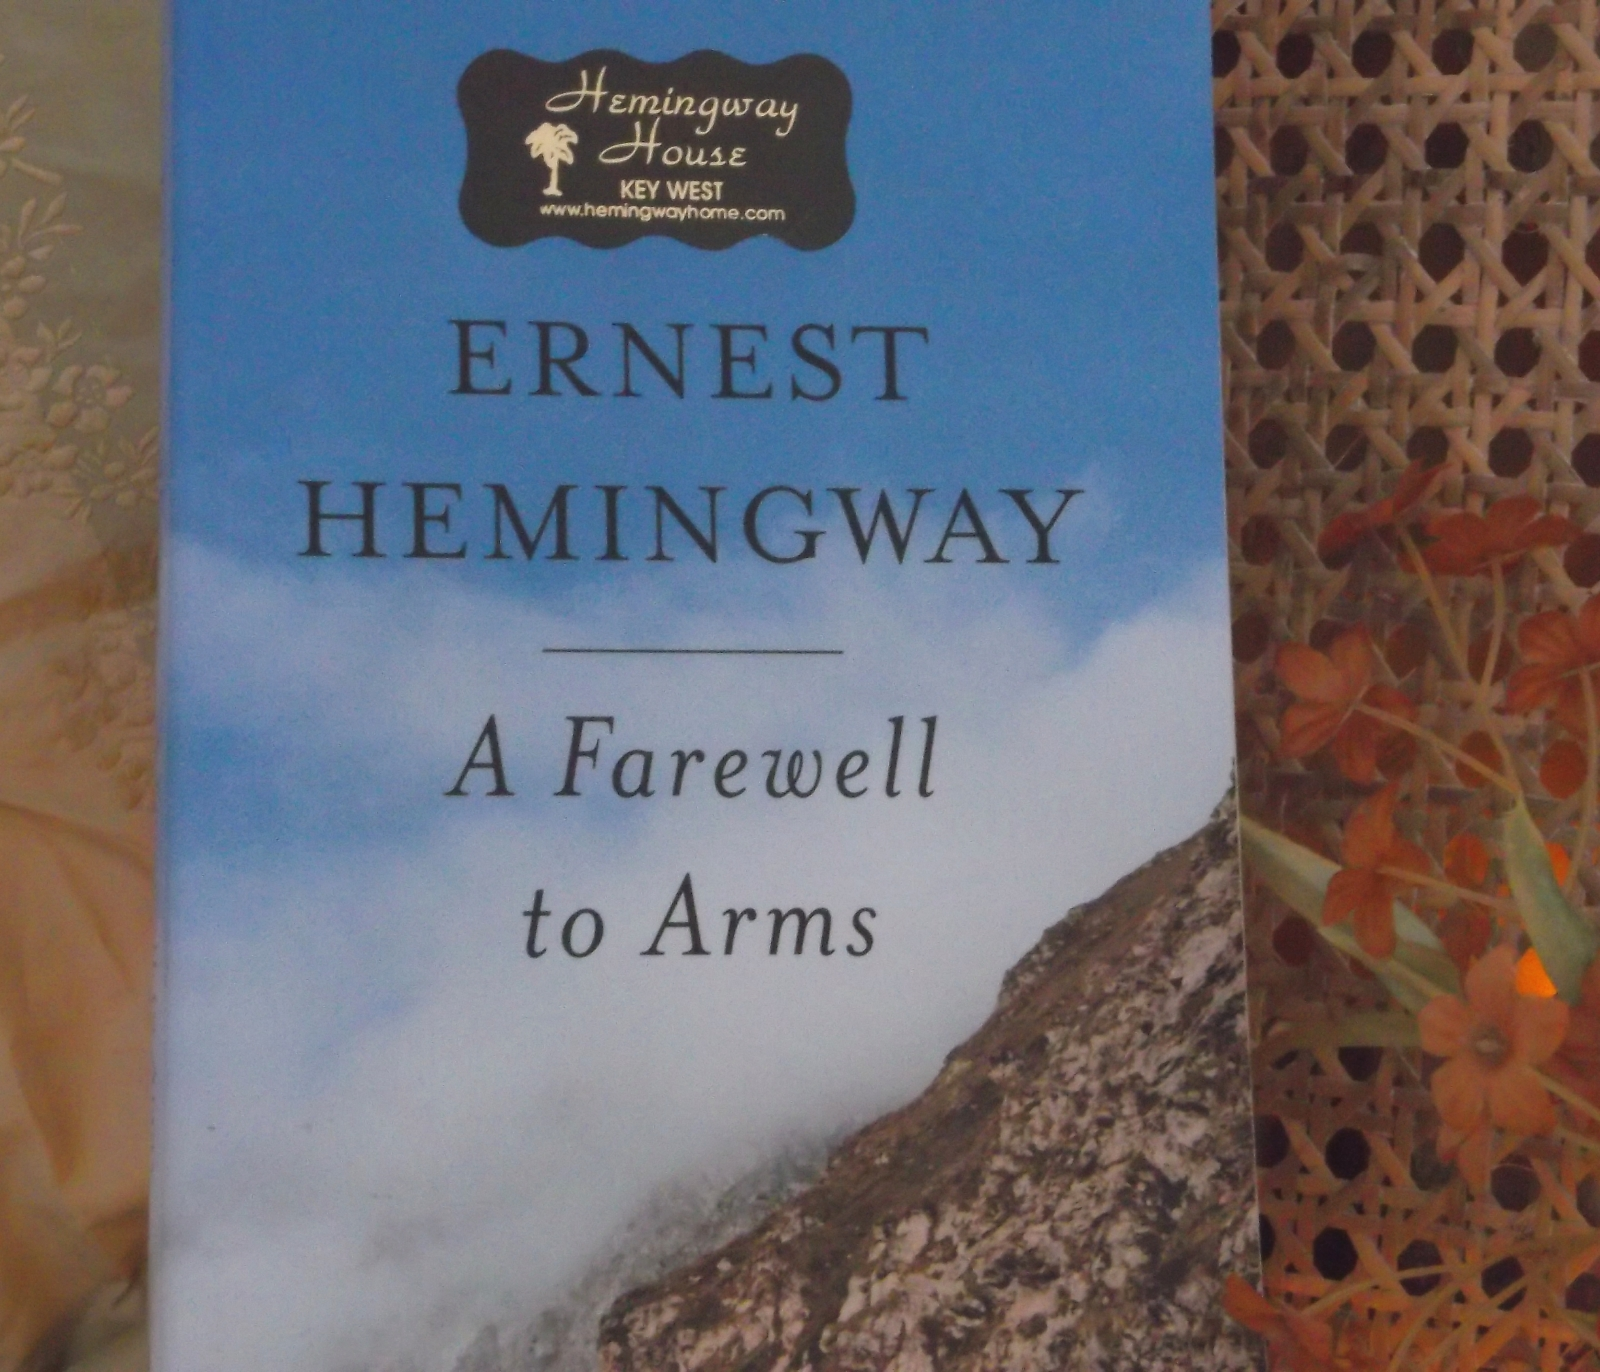 an analysis of the tone in a farewell to arms by ernest hemingway Find all available study guides and summaries for a farewell to arms by ernest hemingway if there is a sparknotes, shmoop, or cliff notes guide, we.